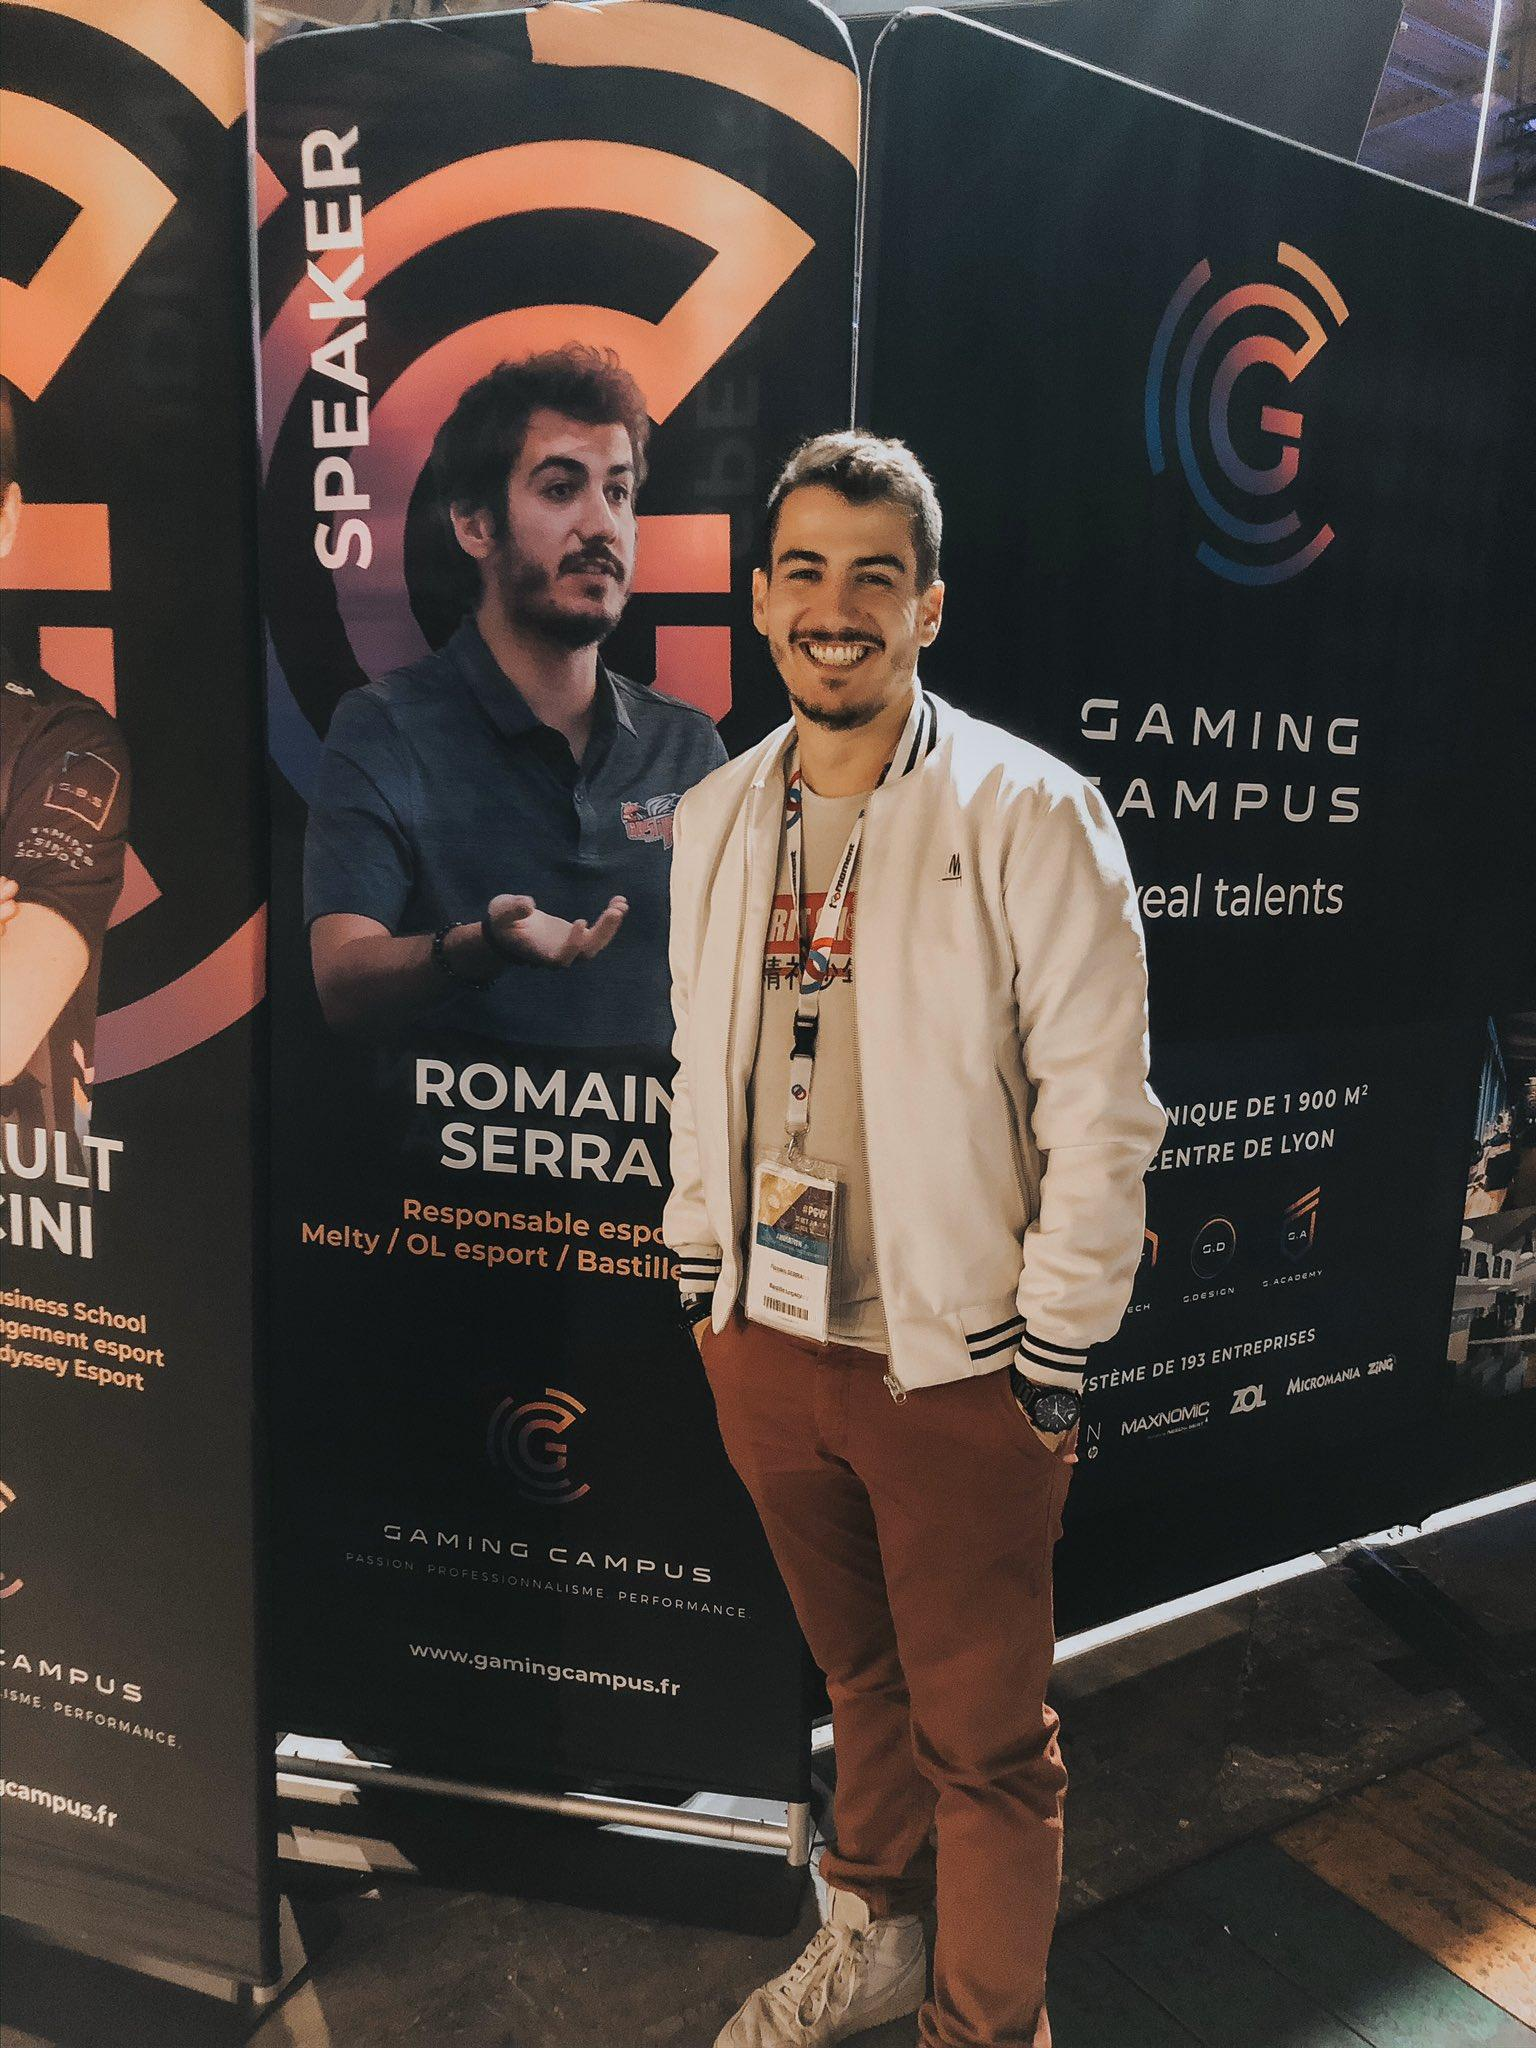 Romain Serra - PGW - gamingcampus.fr